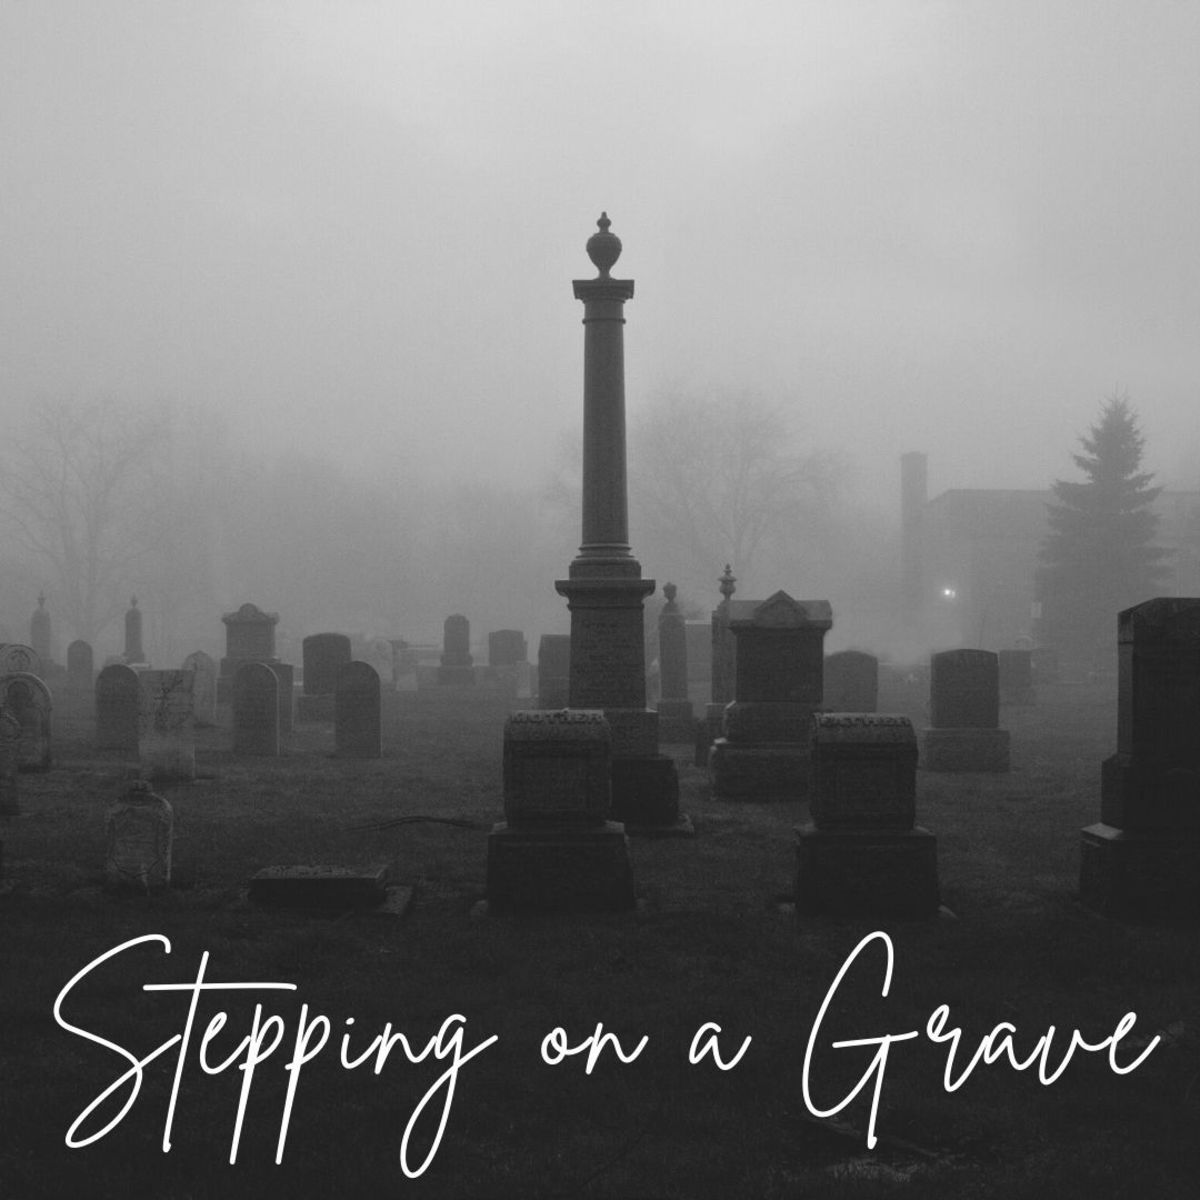 It is considered bad luck to step on a grave.